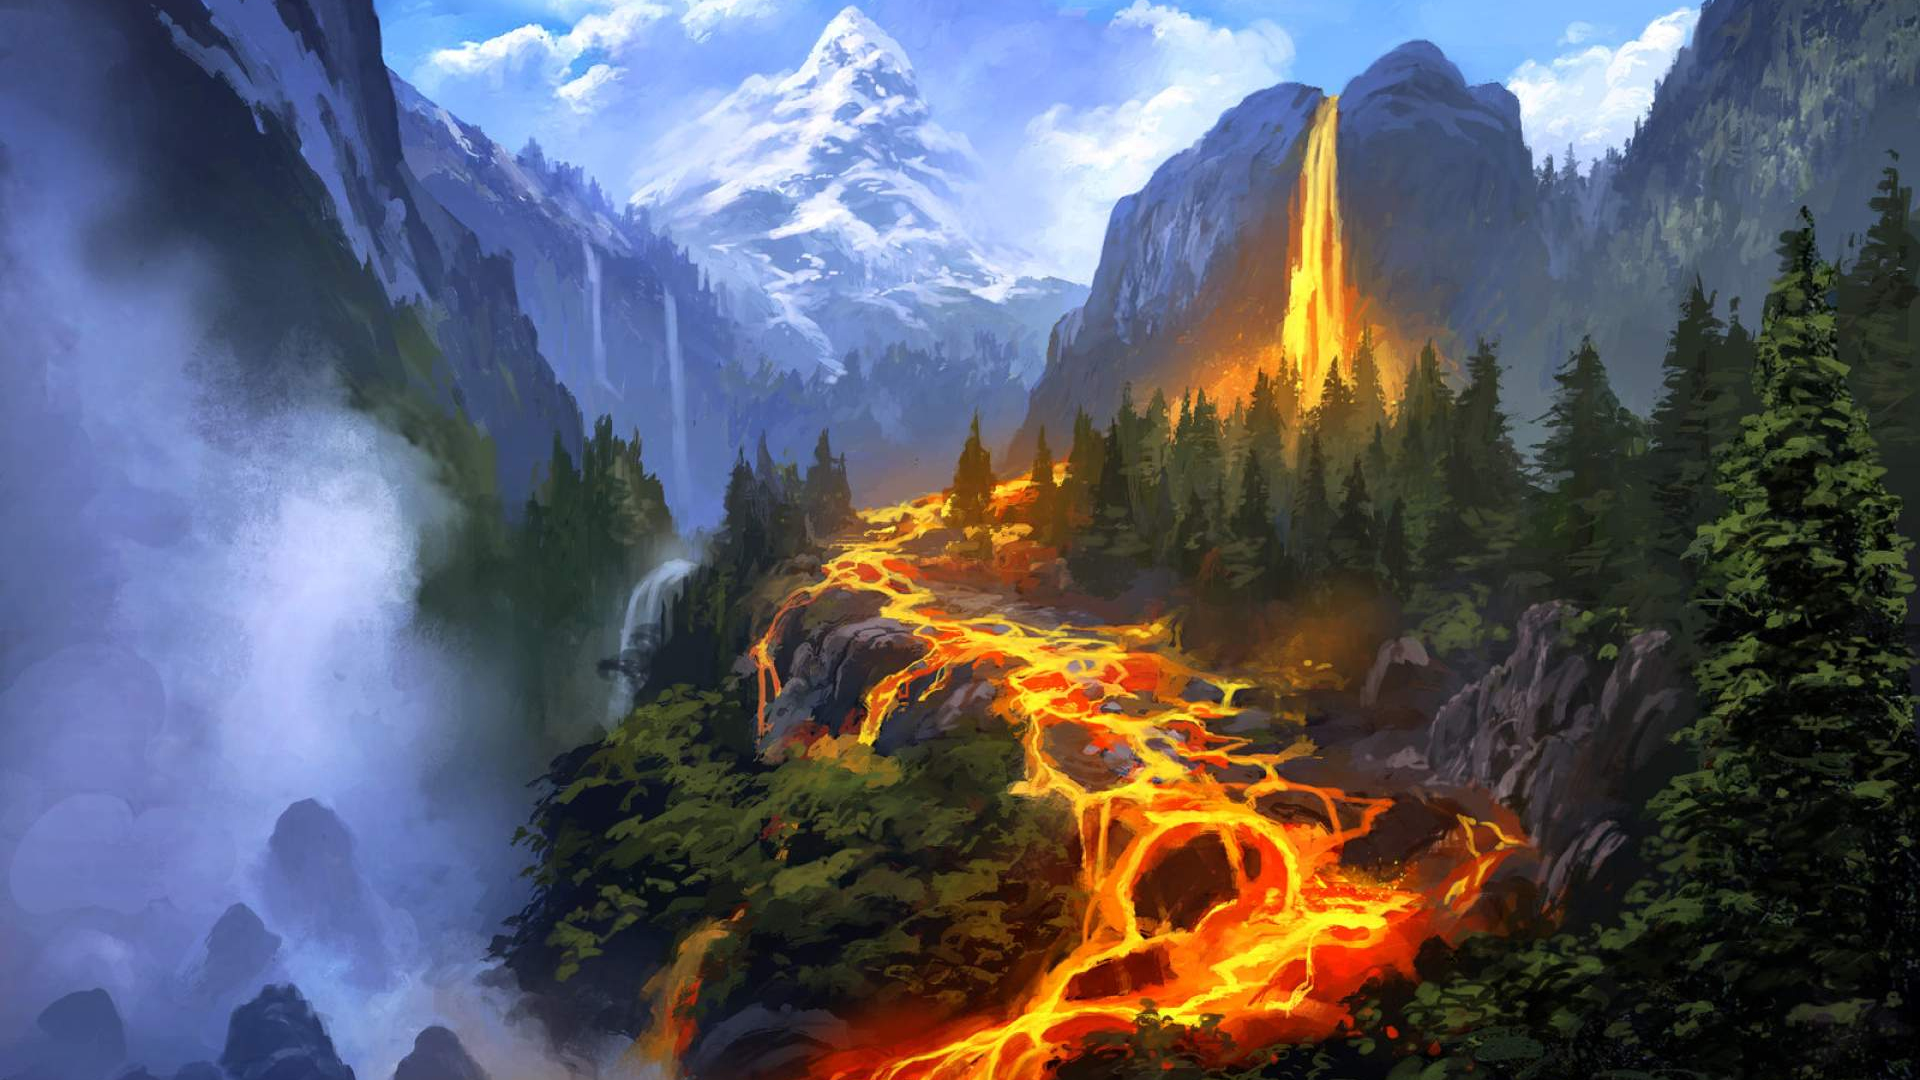 Download 1920x1080 Wallpaper Lava Flow Of Volcanic Mountains Full